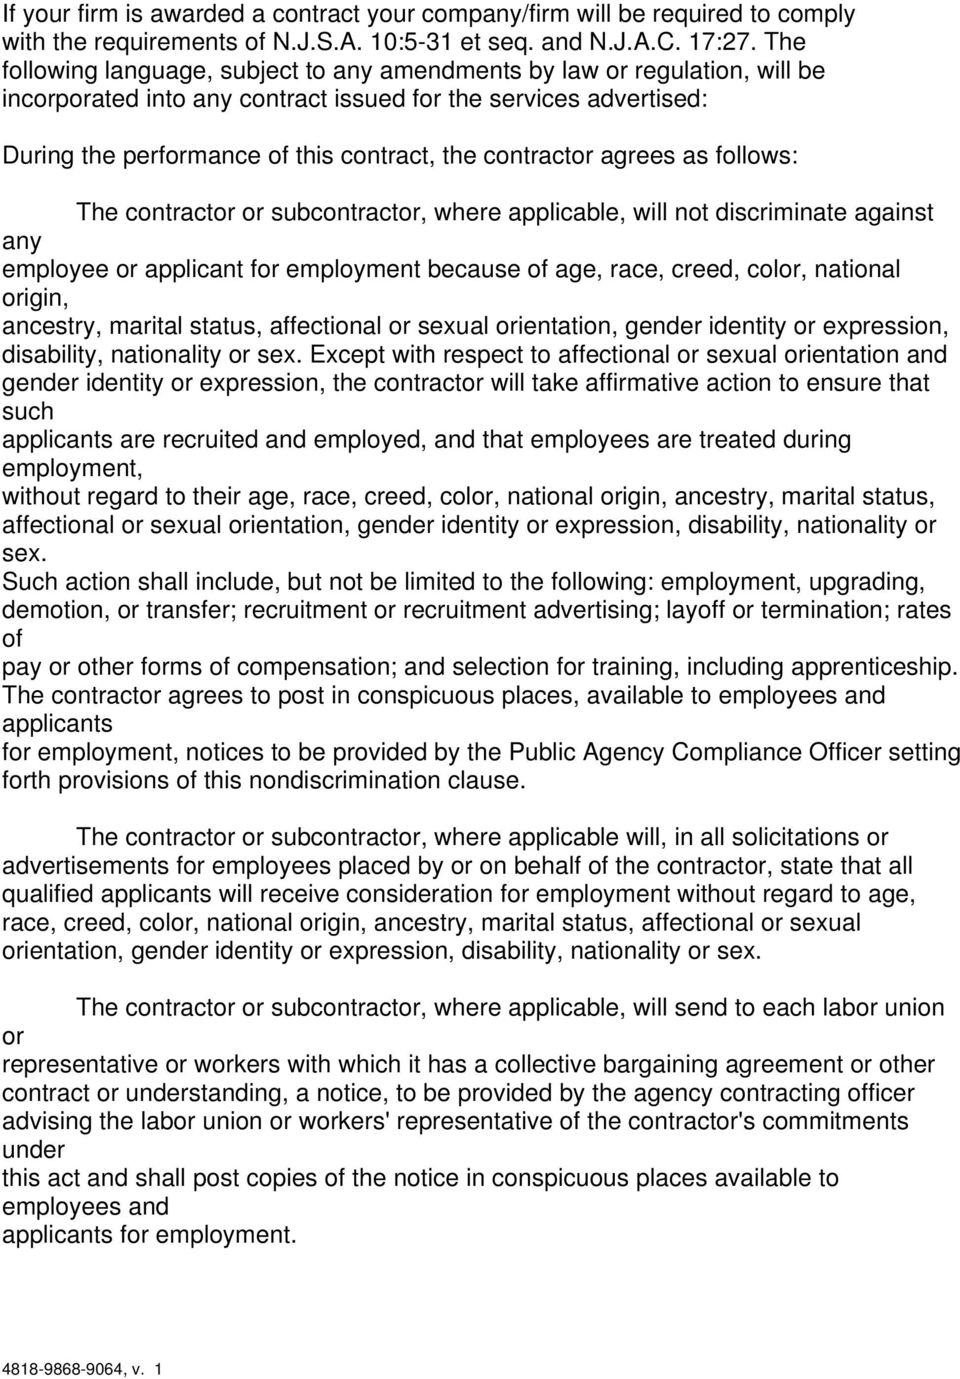 contractor agrees as follows: The contractor or subcontractor, where applicable, will not discriminate against any employee or applicant for employment because of age, race, creed, color, national